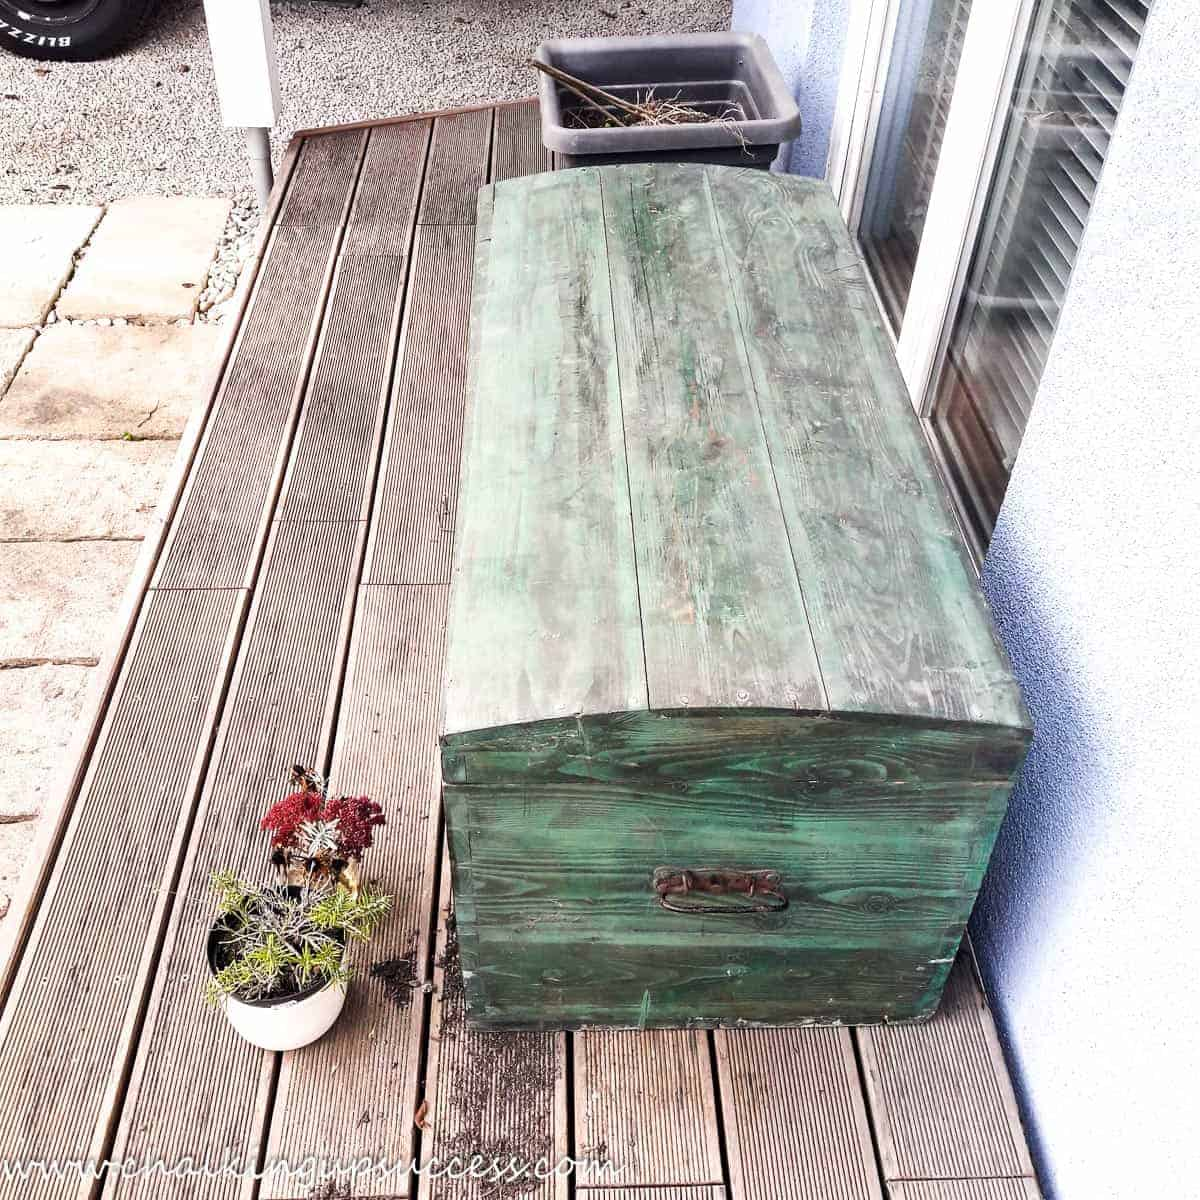 A 'before' shot of the wooden trunk on the wooden deck outside our house. The trunk has a dark green woodstain and is ver dirty after being stored in a lock-up garage for such a long time.